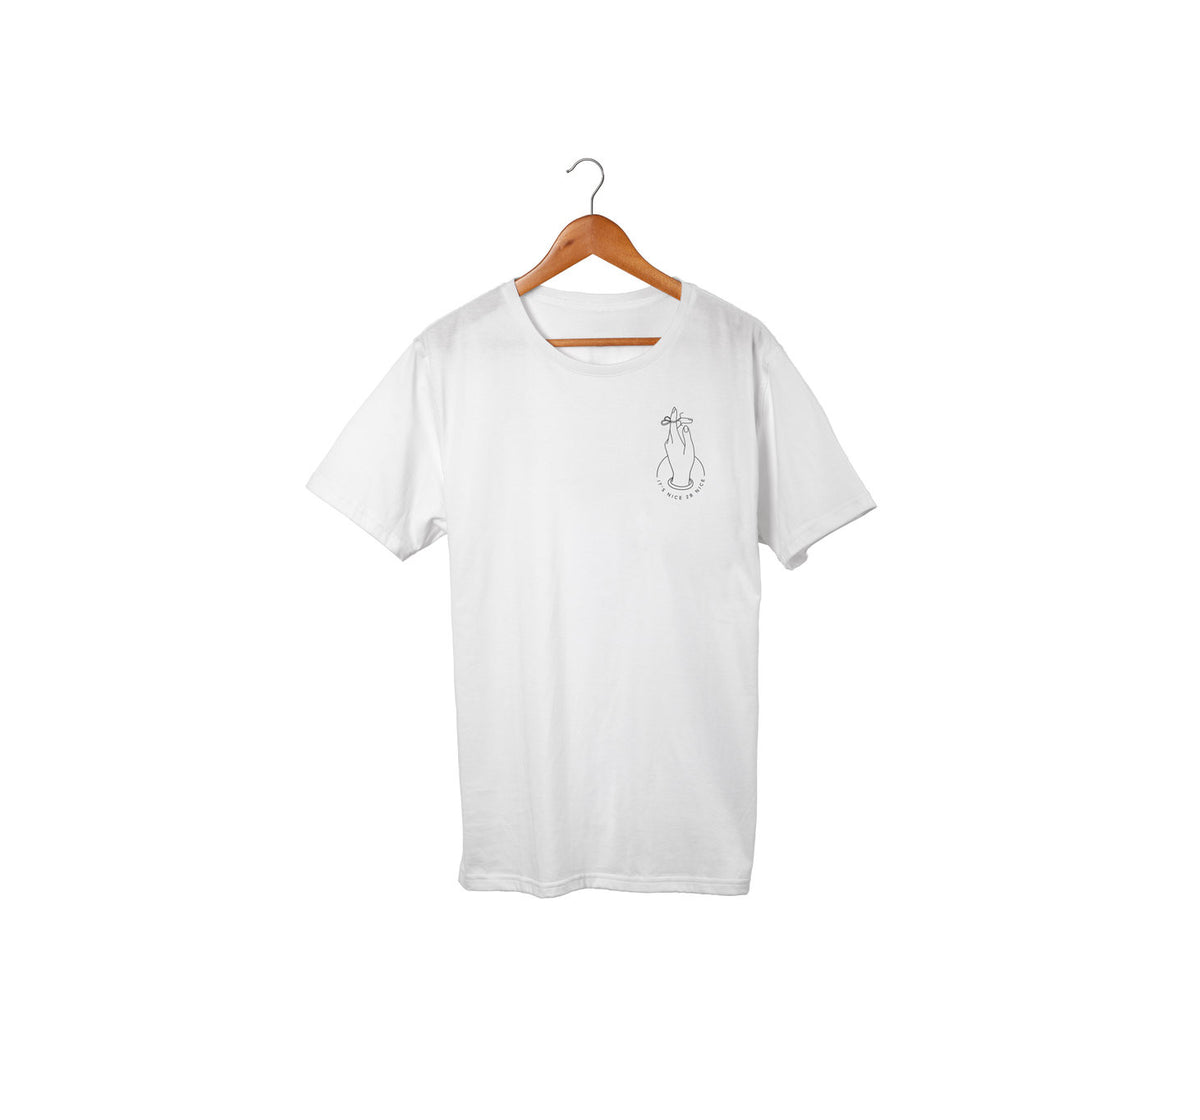 """The Reminder"" 